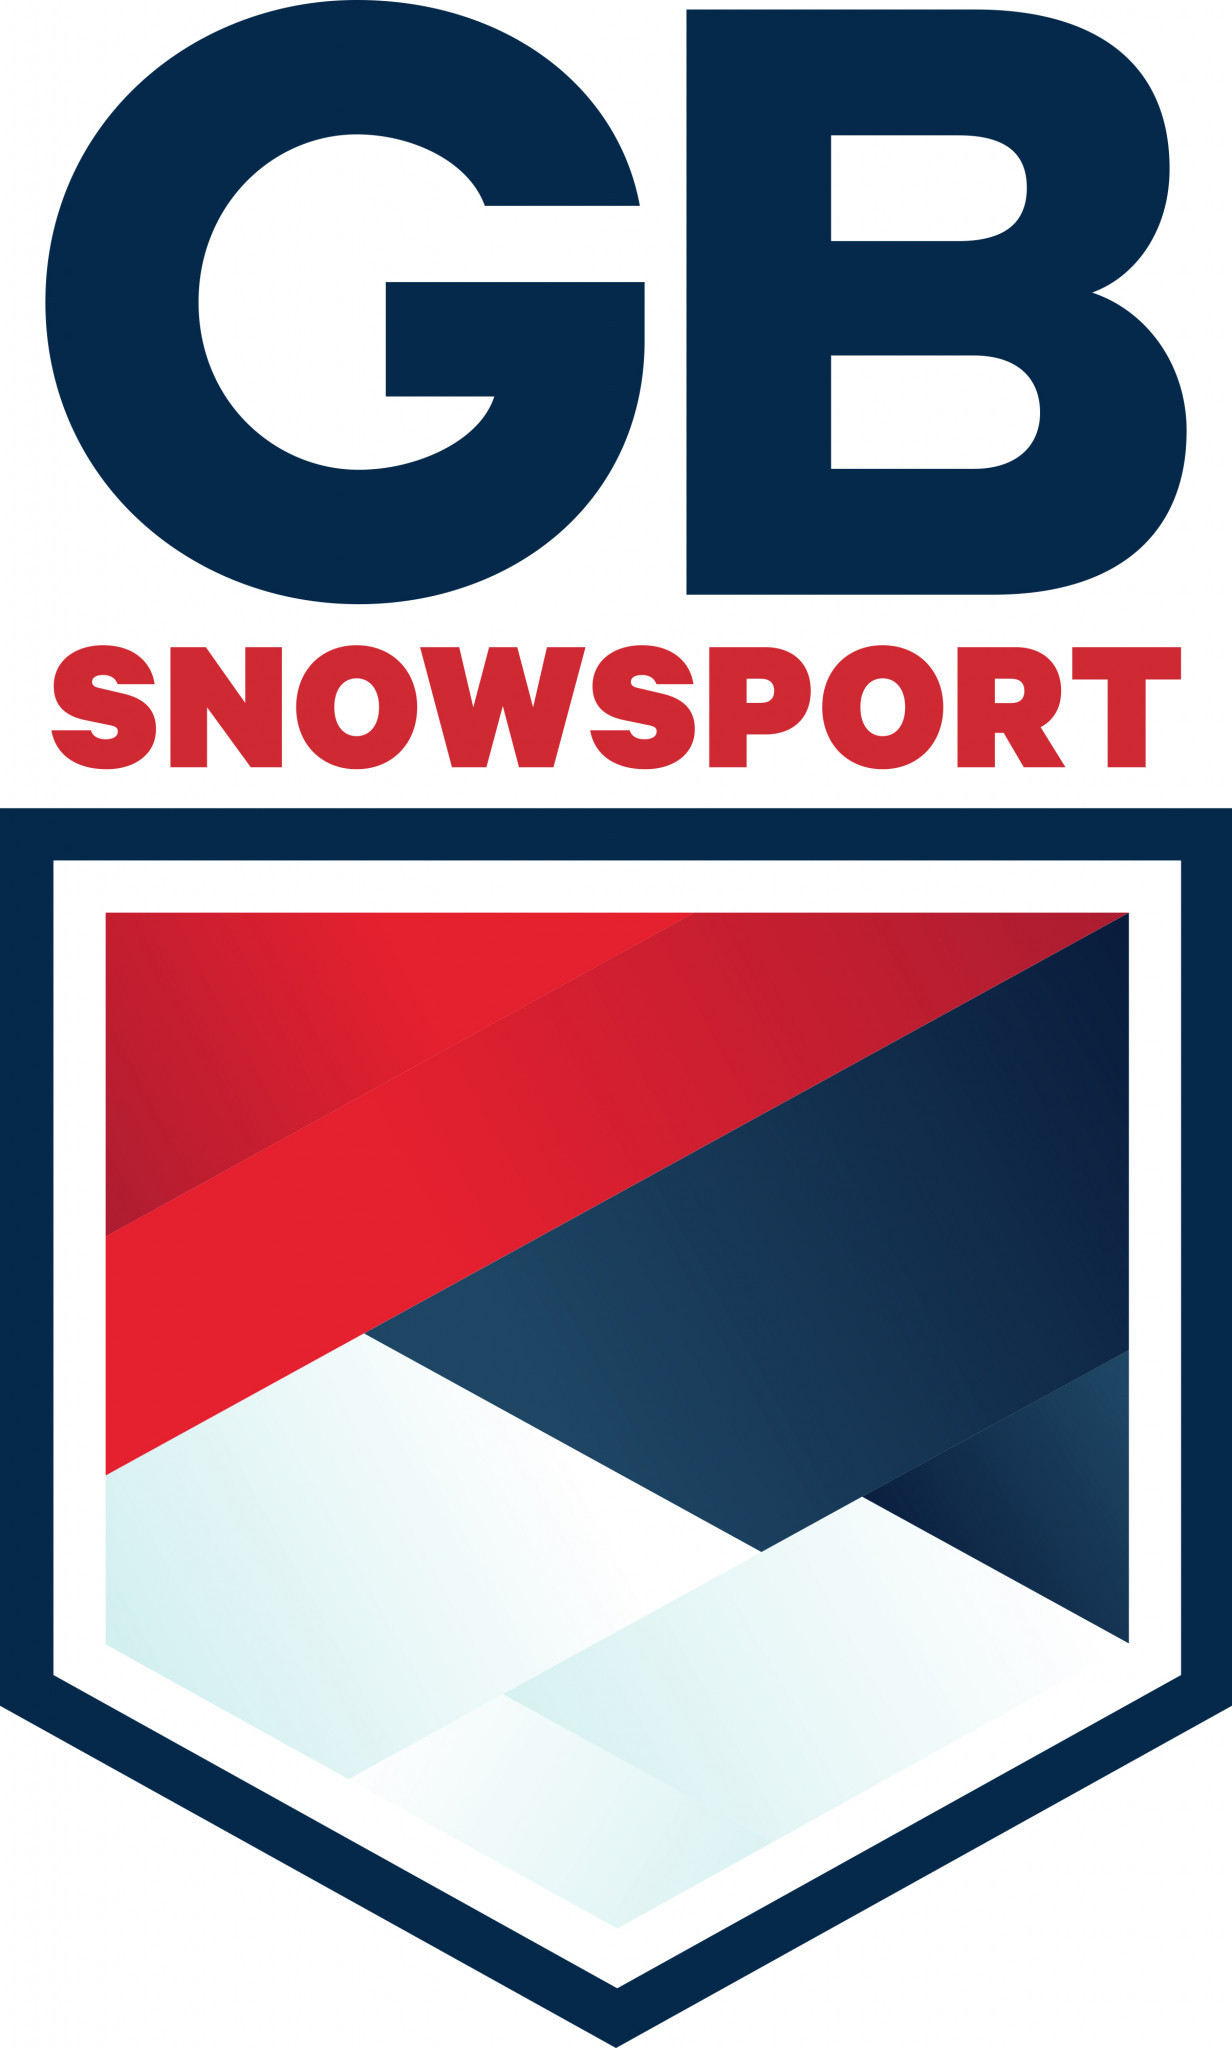 As part of the rebranding, GB Snowsport has released a new logo, tagline and slogan ©GB Snowsport